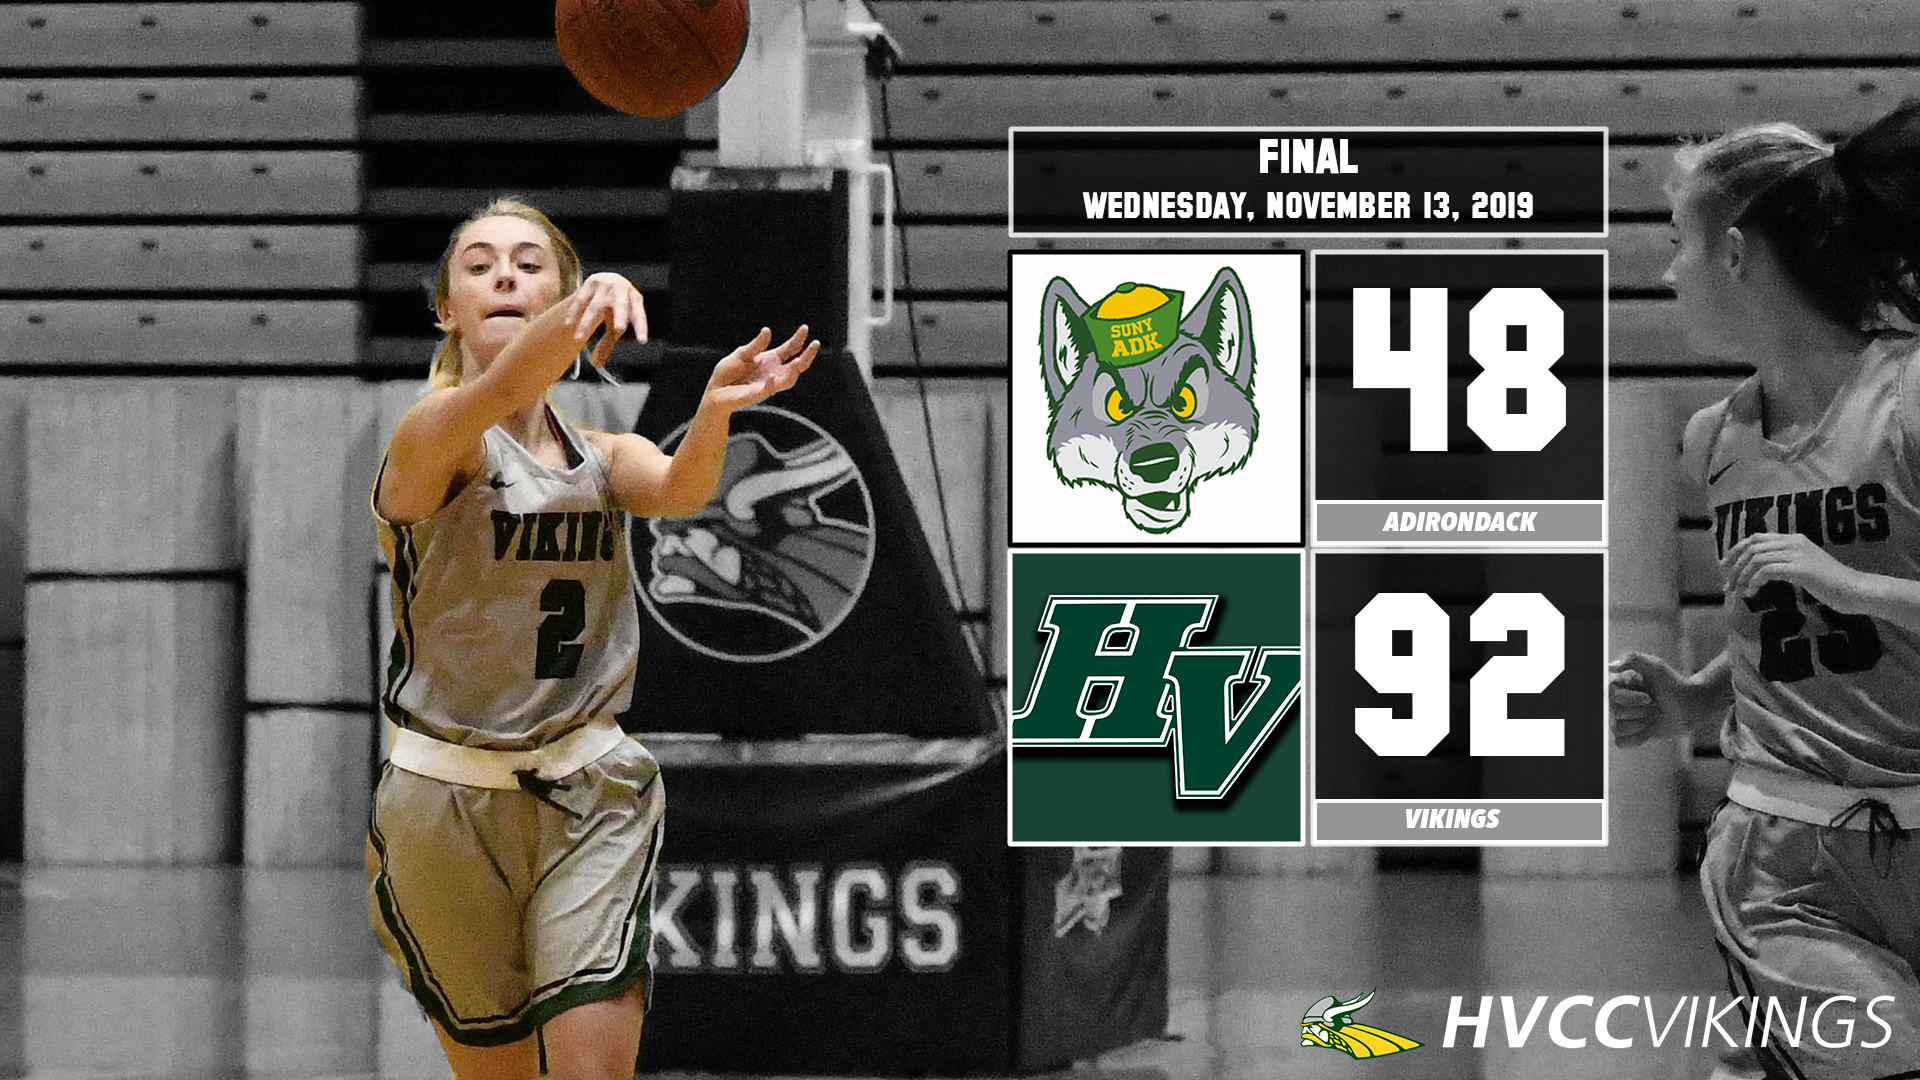 Women's basketball defeats Adirondack 92-48 on Nov. 13, 2019.